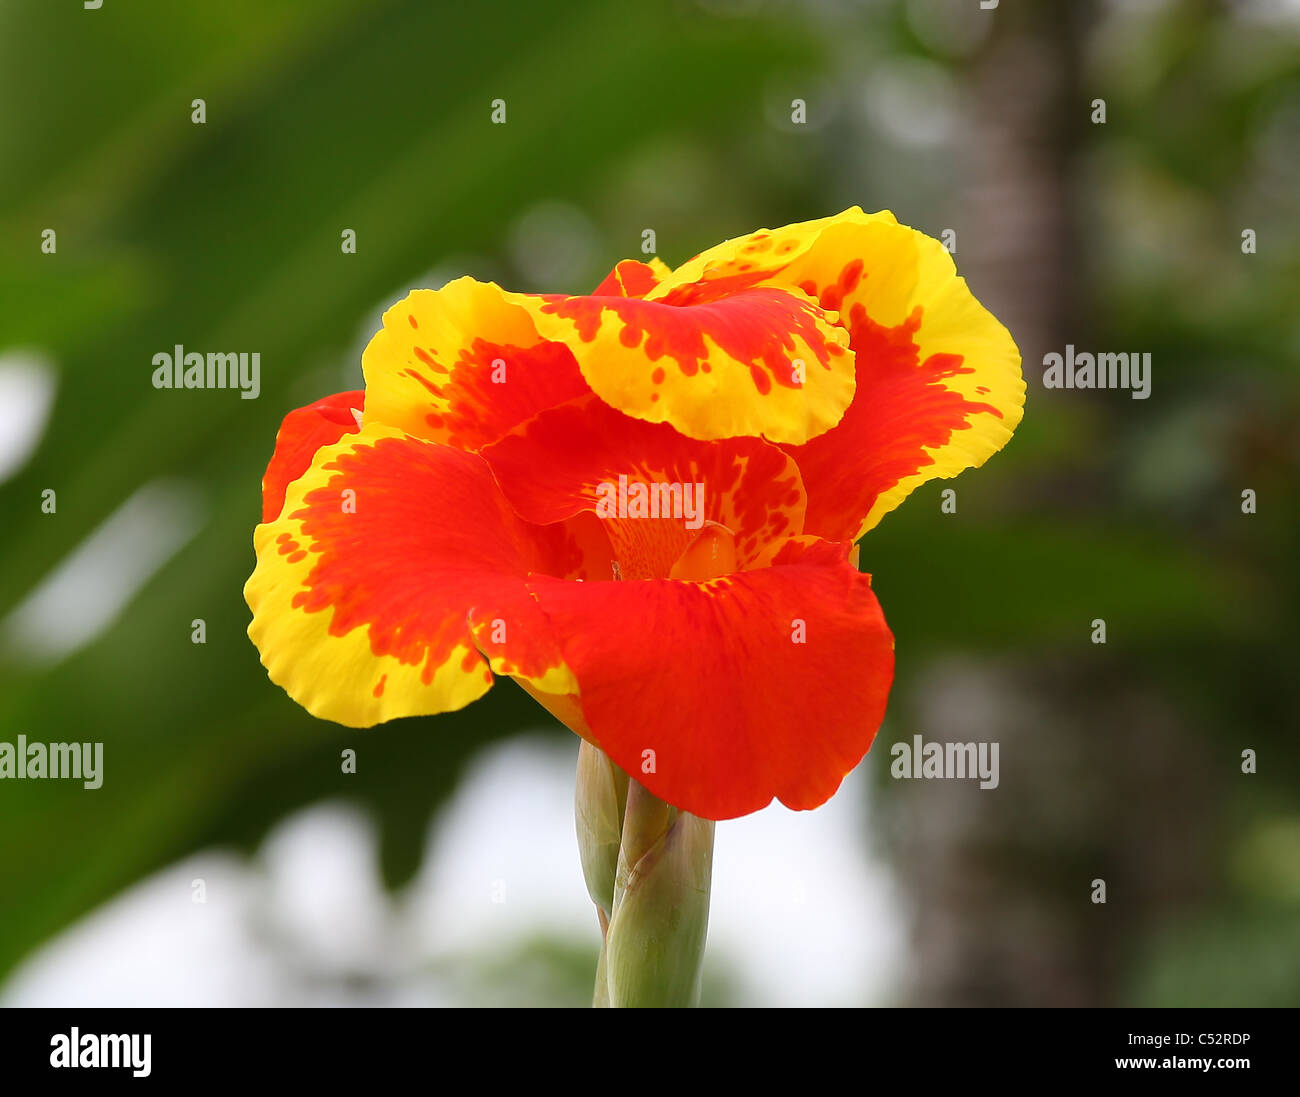 Central America Red Orange Yellow Petals Flower Head Flowers Bloom